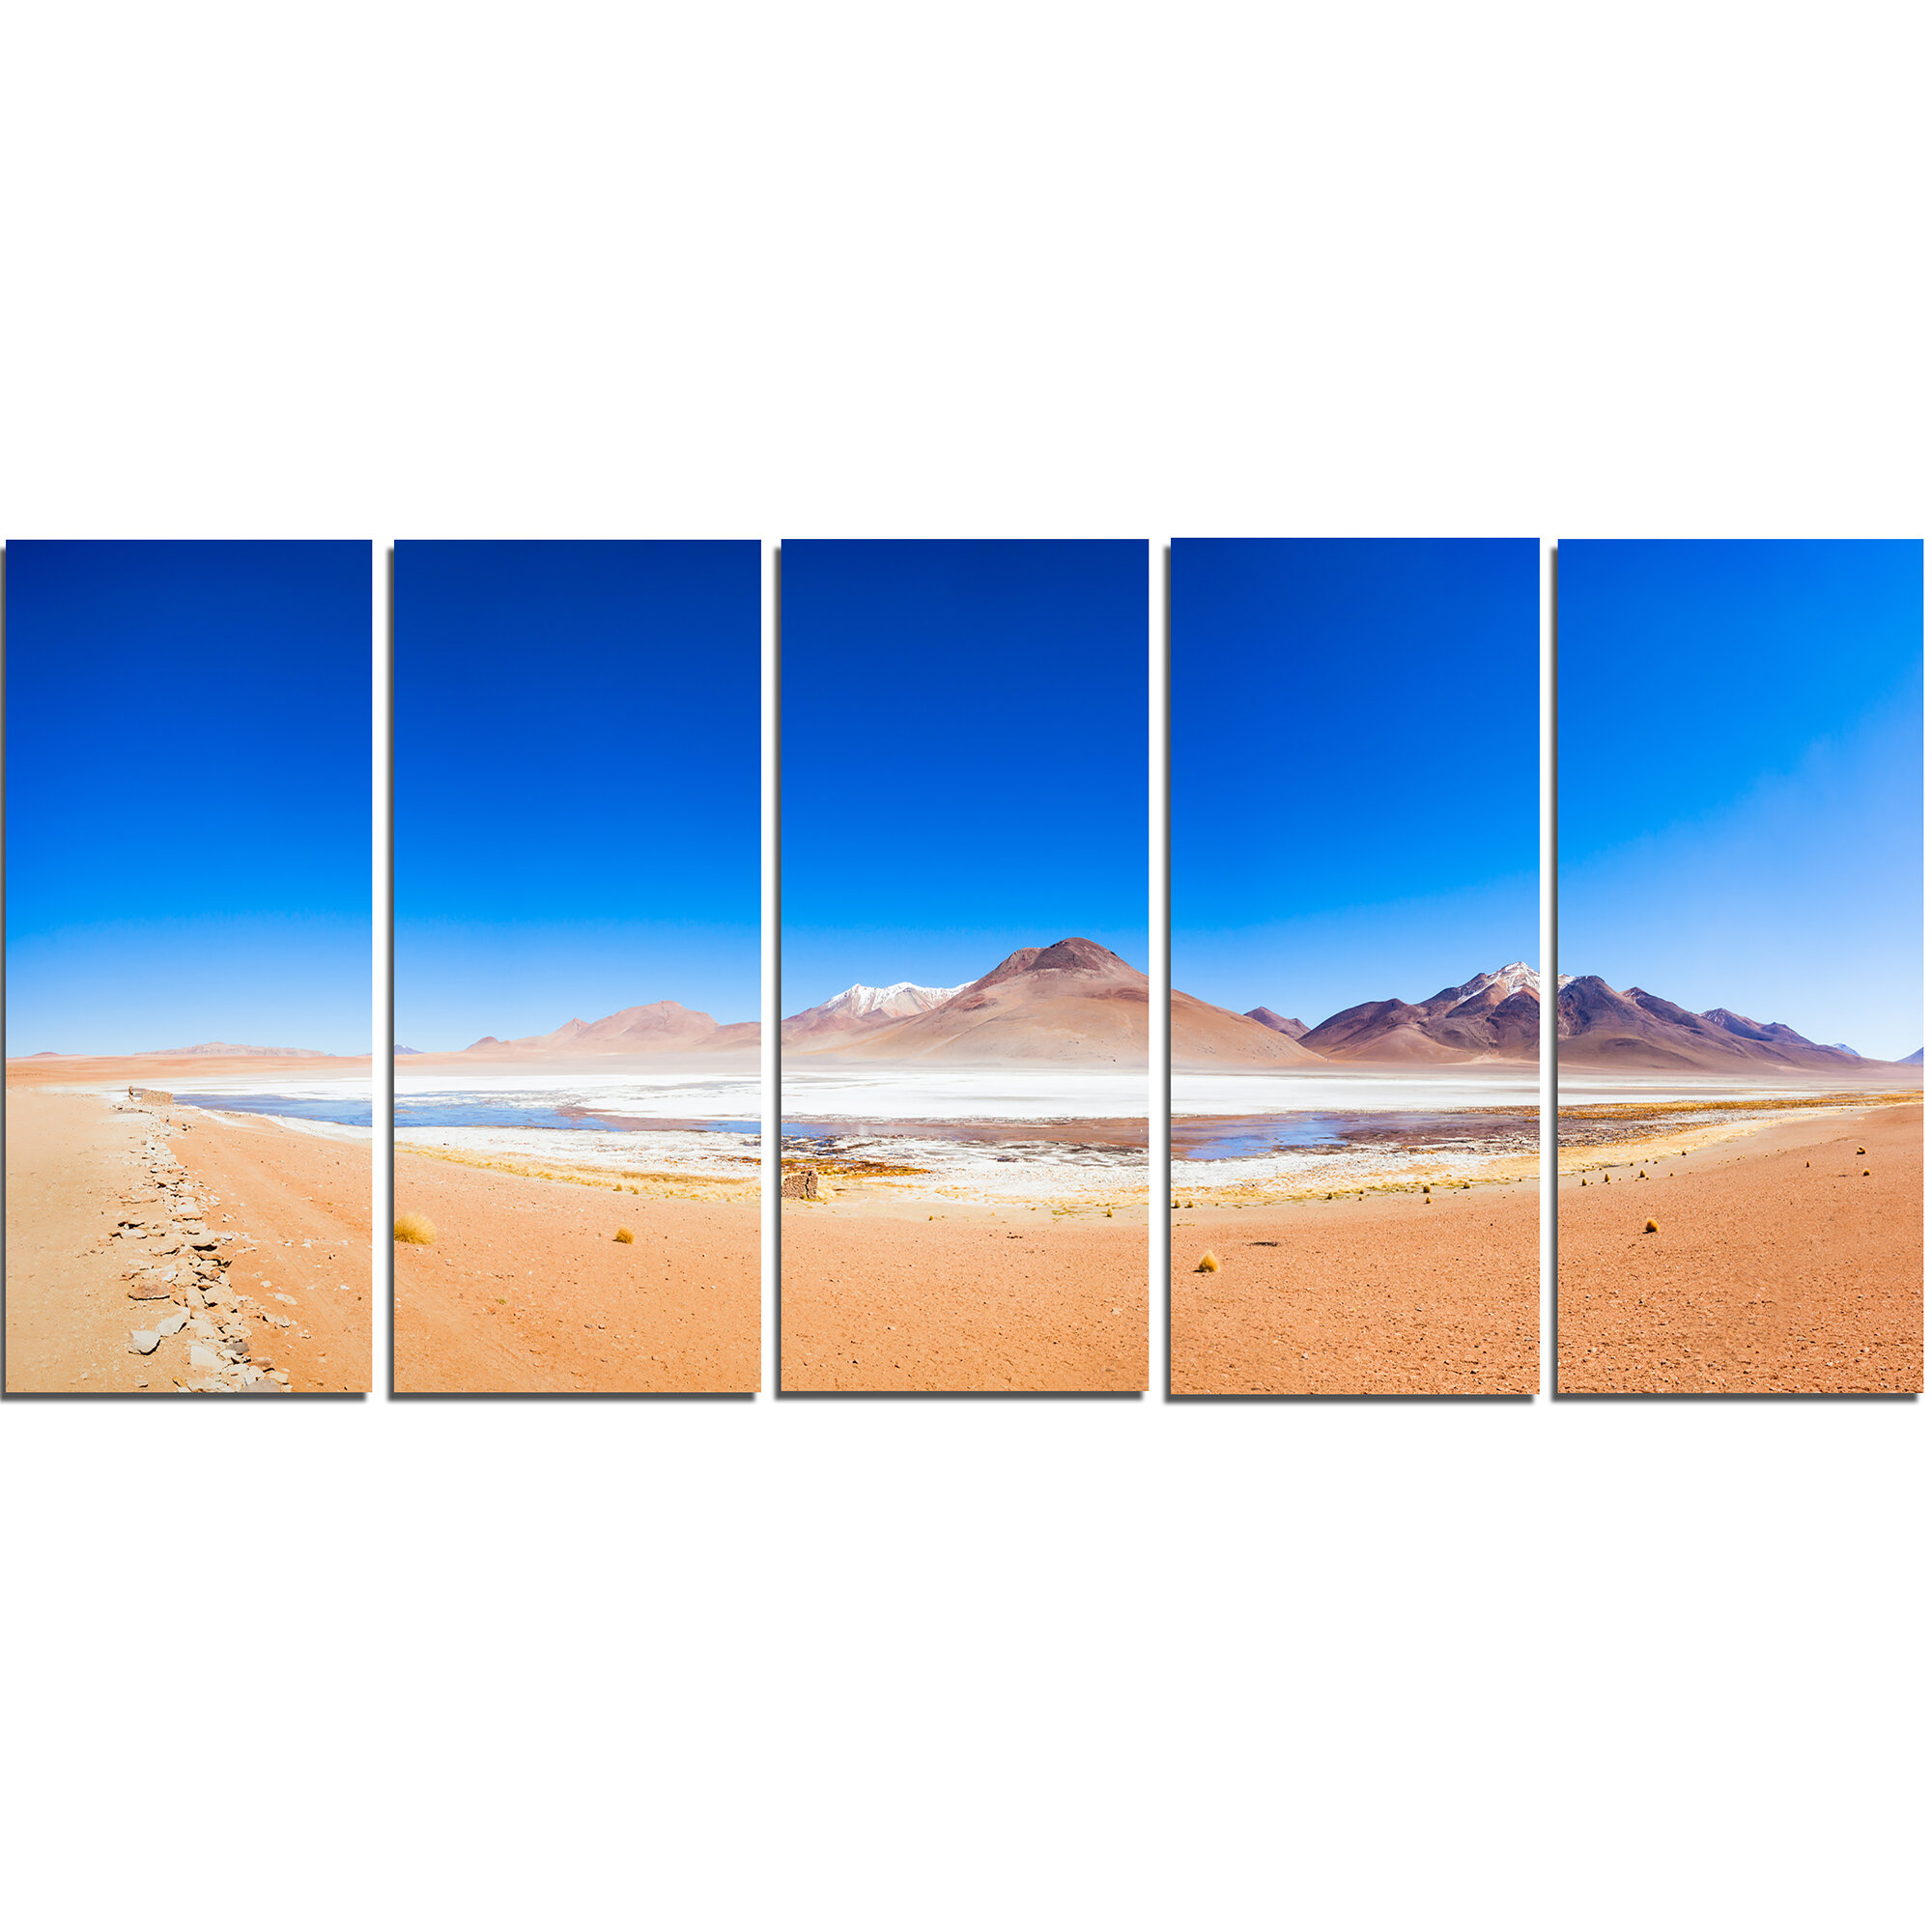 Designart Bolivia Altiplano Lake Panorama 5 Piece Wall Art On Wrapped Canvas Set Wayfair